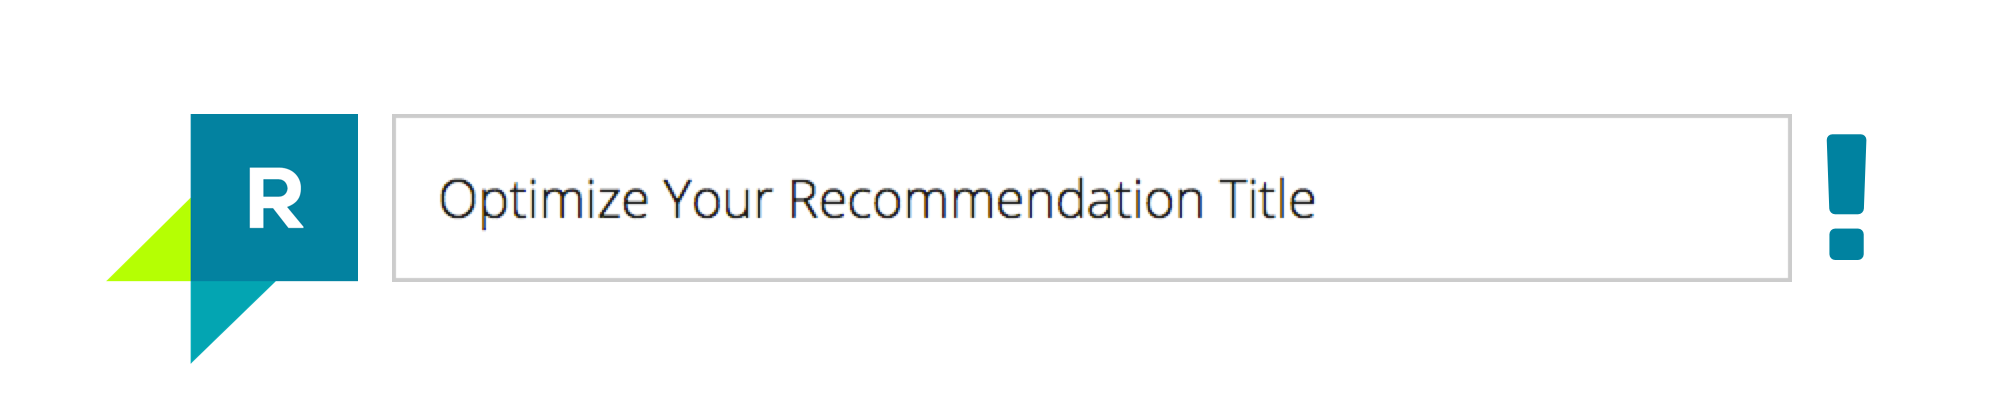 How To Optimize Your Recommendation Title?